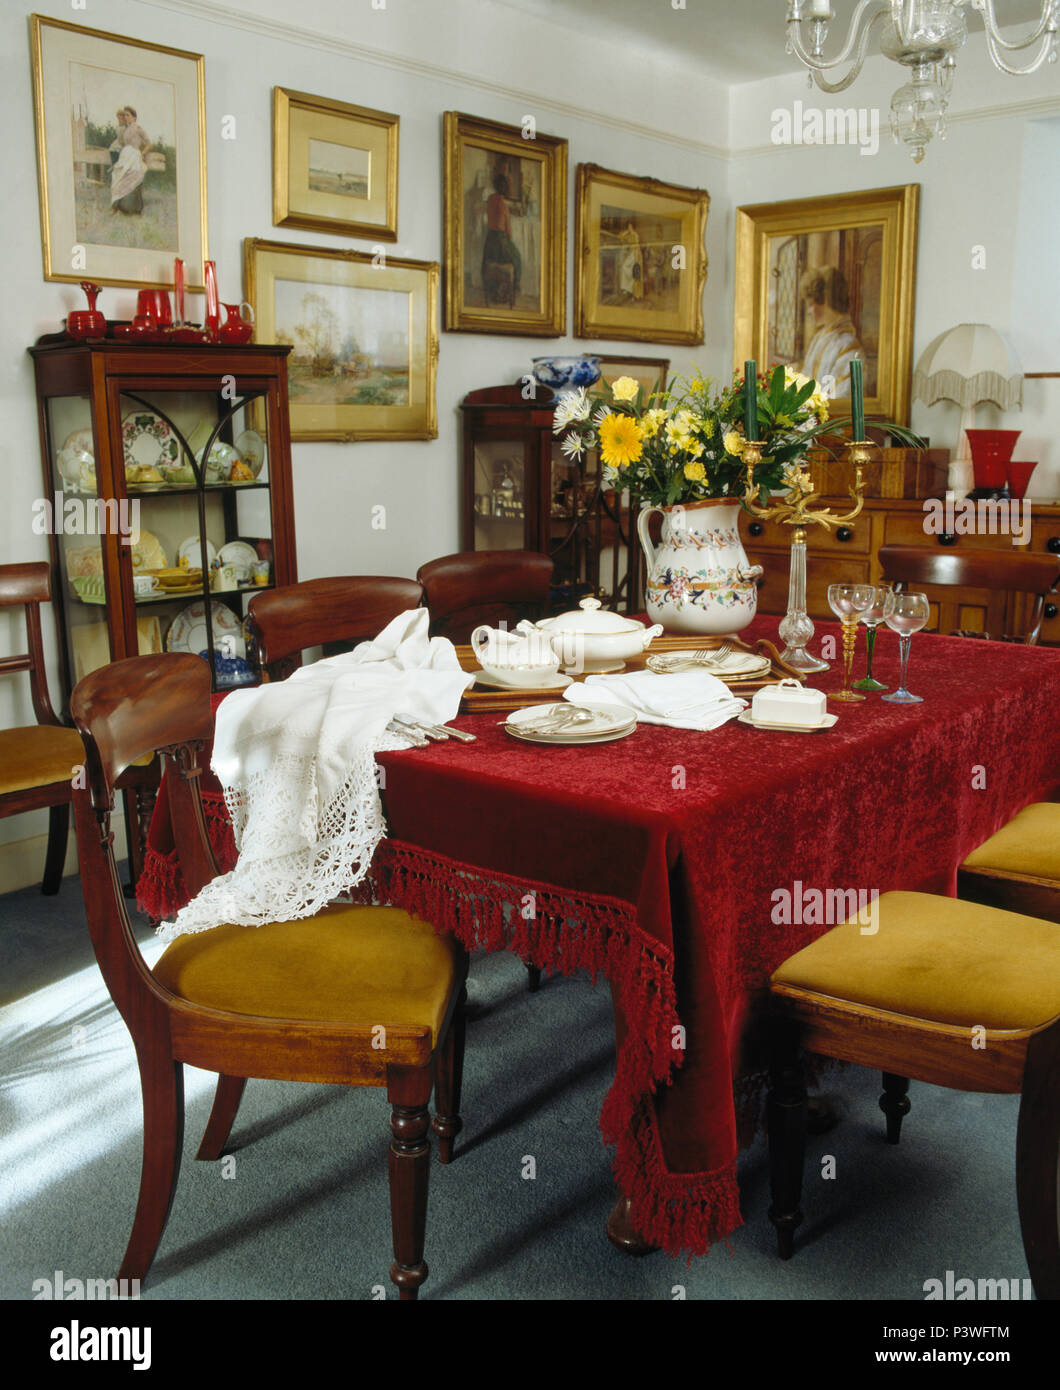 Table With Red Velour Cloth And Antique Chairs With Mustard Yellow  Upholstered Seats In Edwardian Style Dining Room